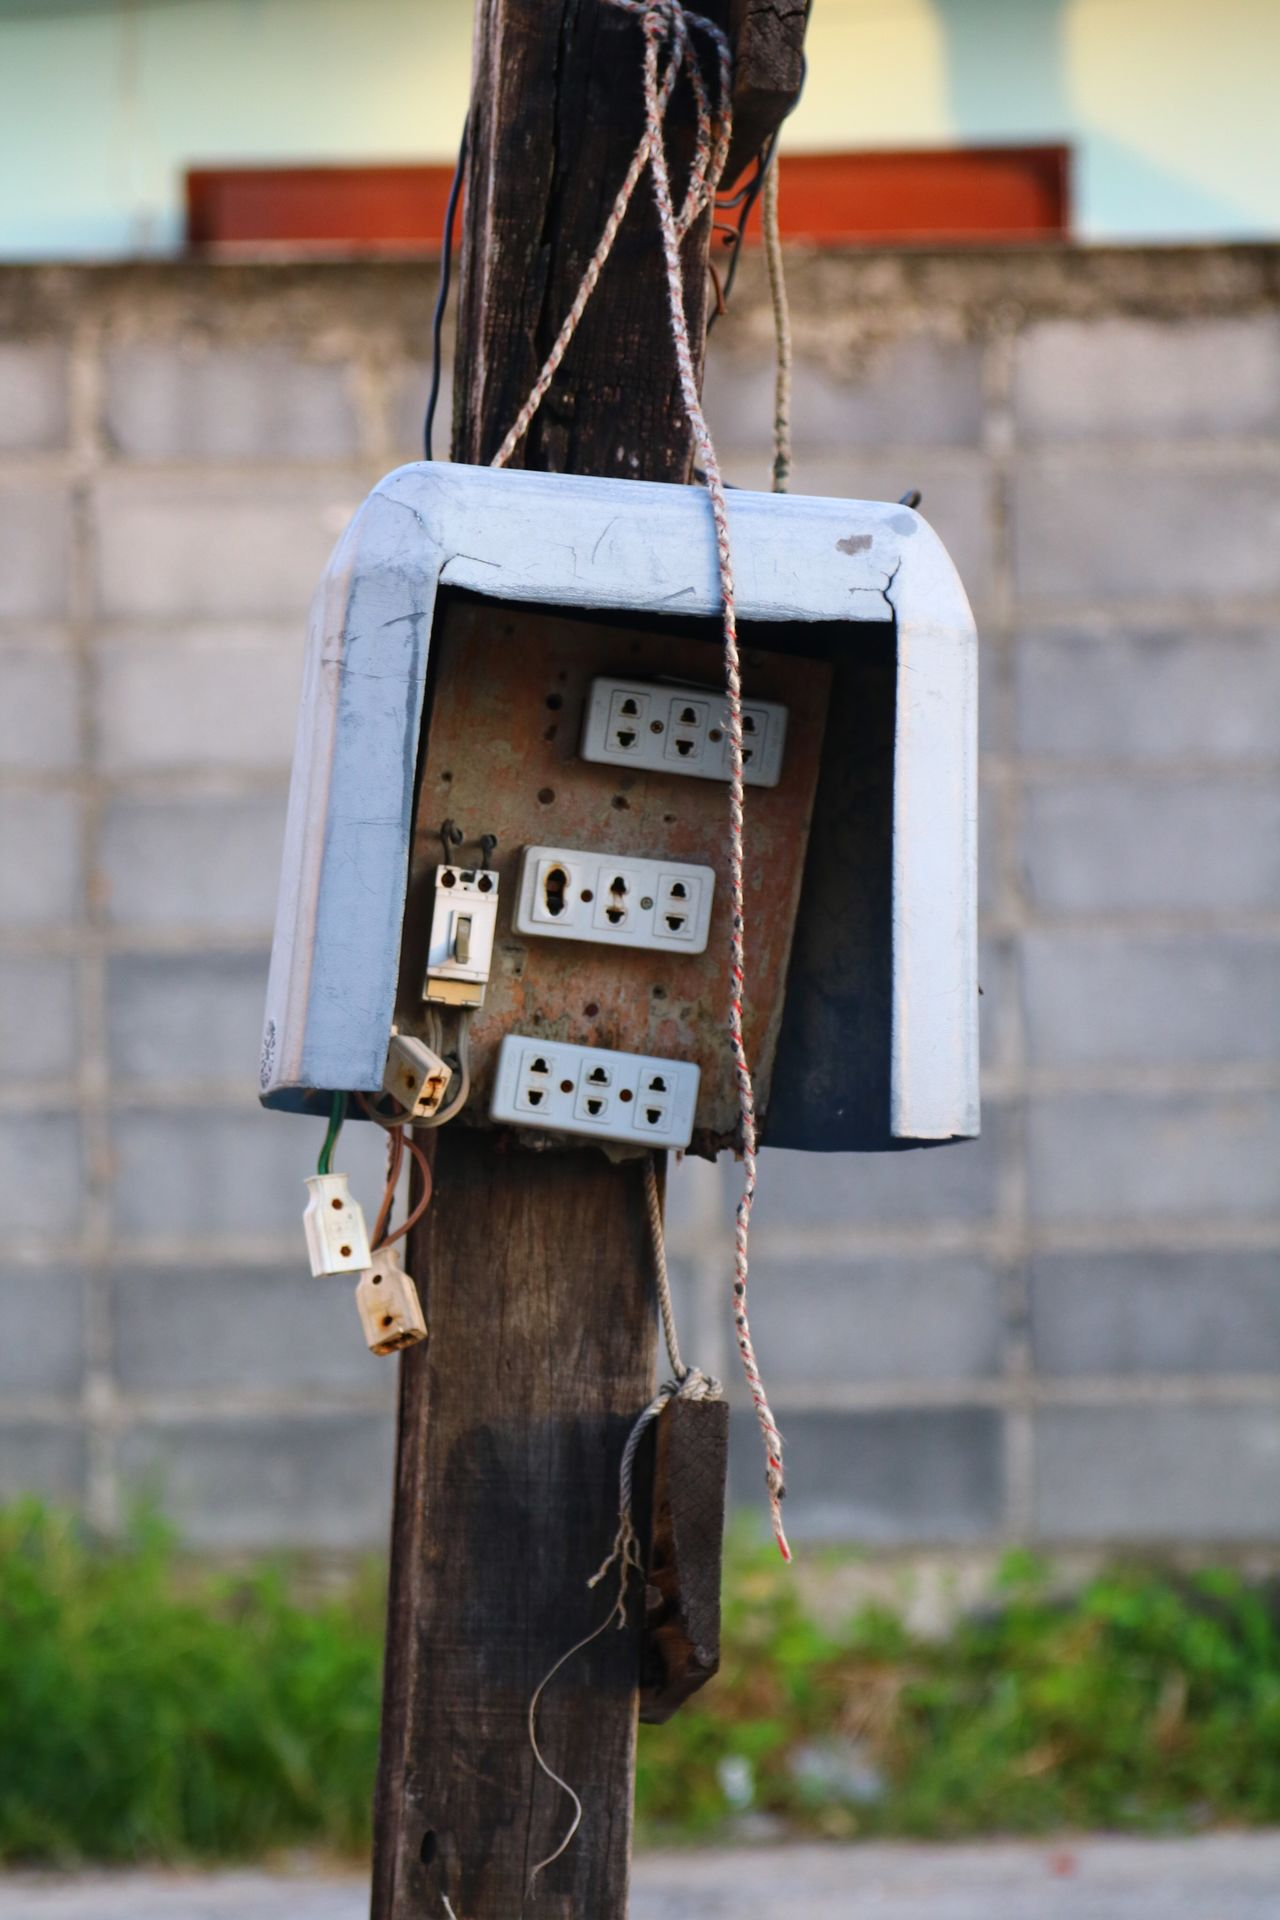 Focus On Foreground House Built Structure Architecture Day Outdoors No People Close-up Birdhouse Plugs